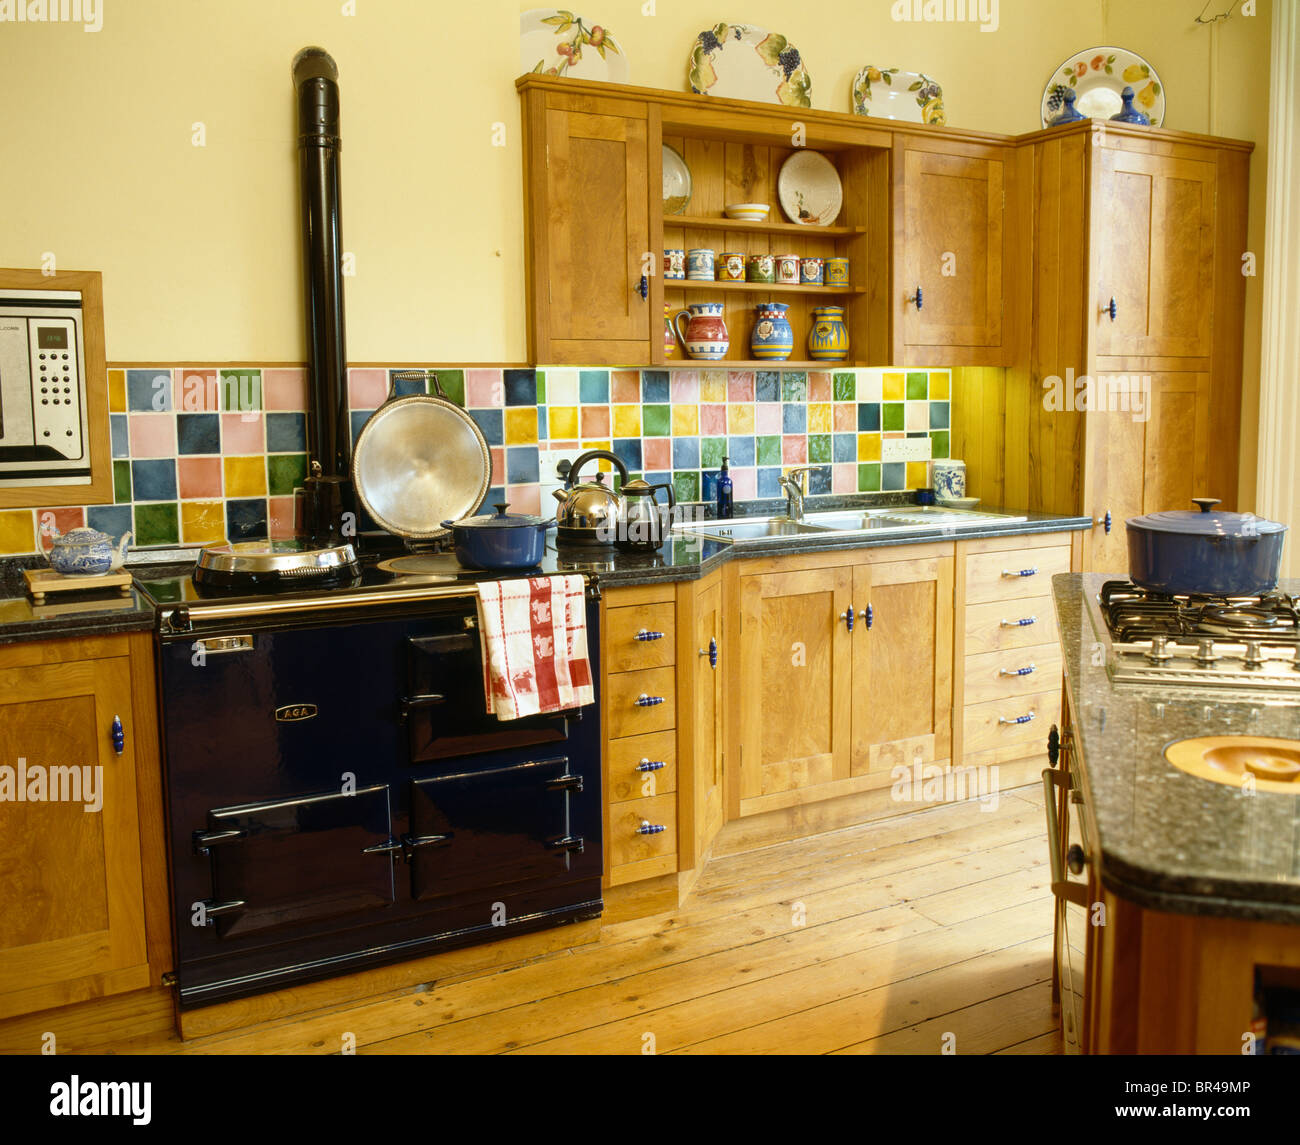 Multi colored ceramic tiles on wall above black aga oven in stock multi colored ceramic tiles on wall above black aga oven in traditional yellow kitchen with wooden fitted units dailygadgetfo Choice Image